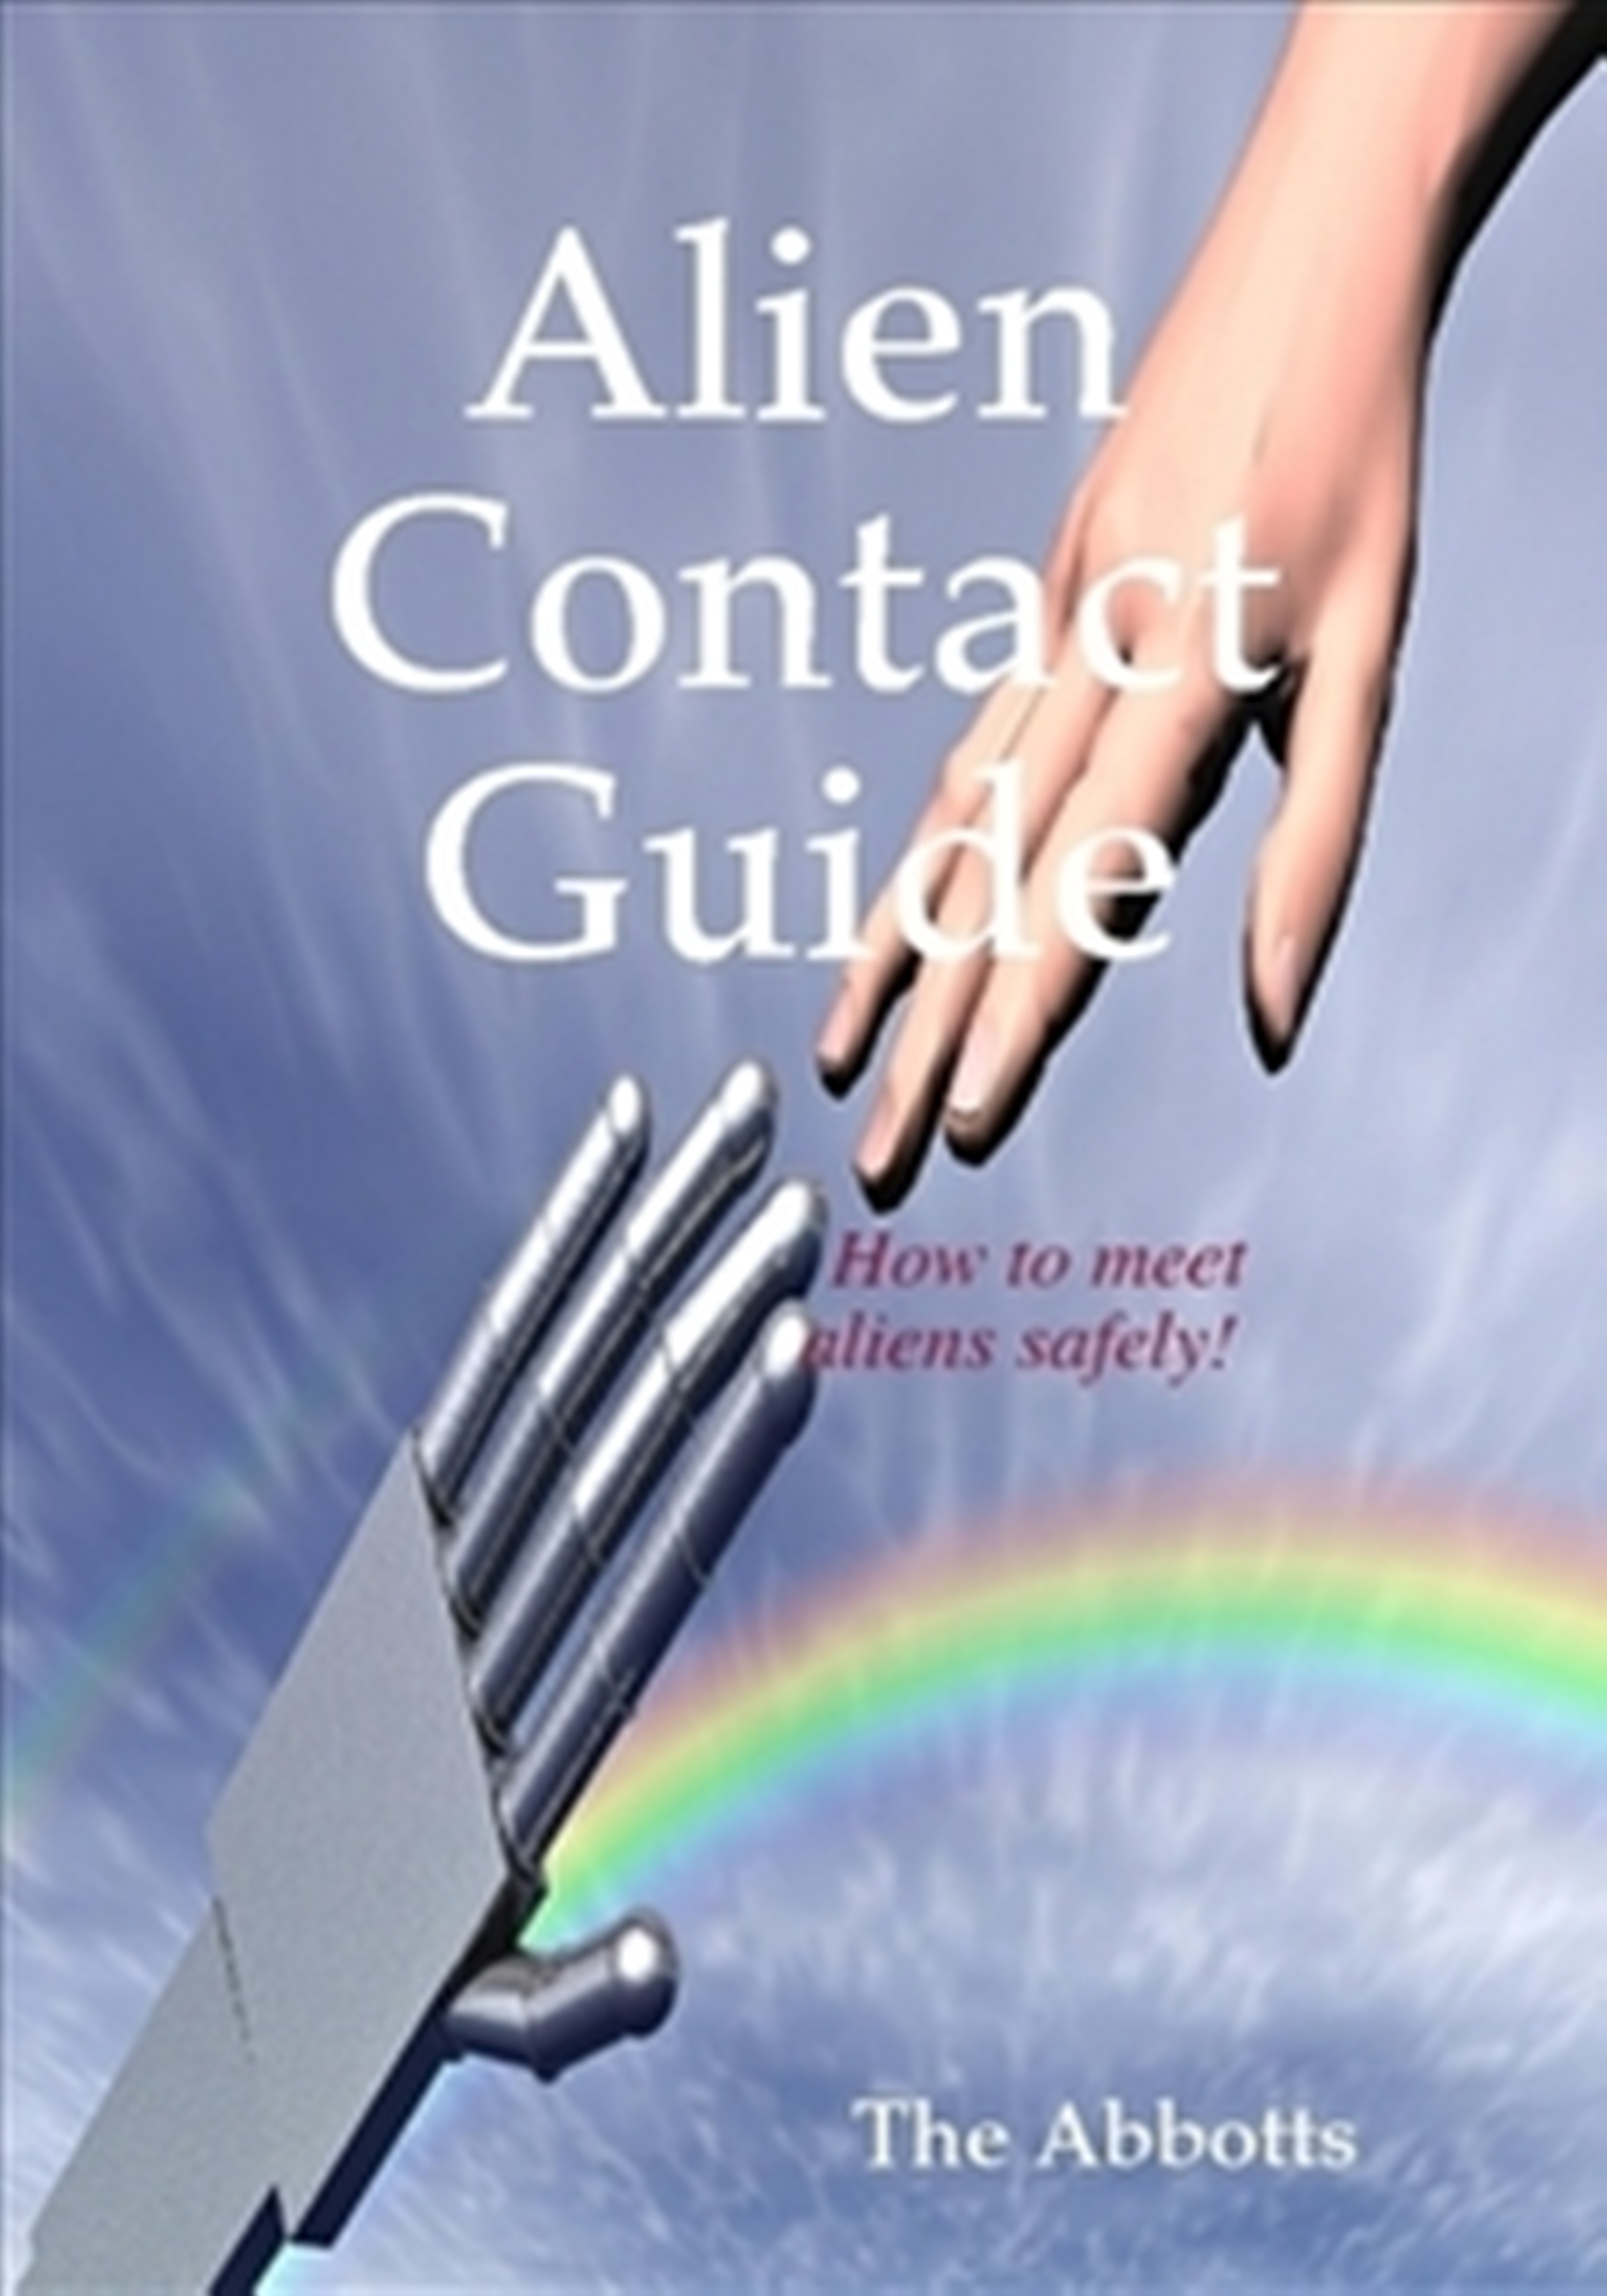 Alien Contact Guide: How to Meet Aliens Safely!